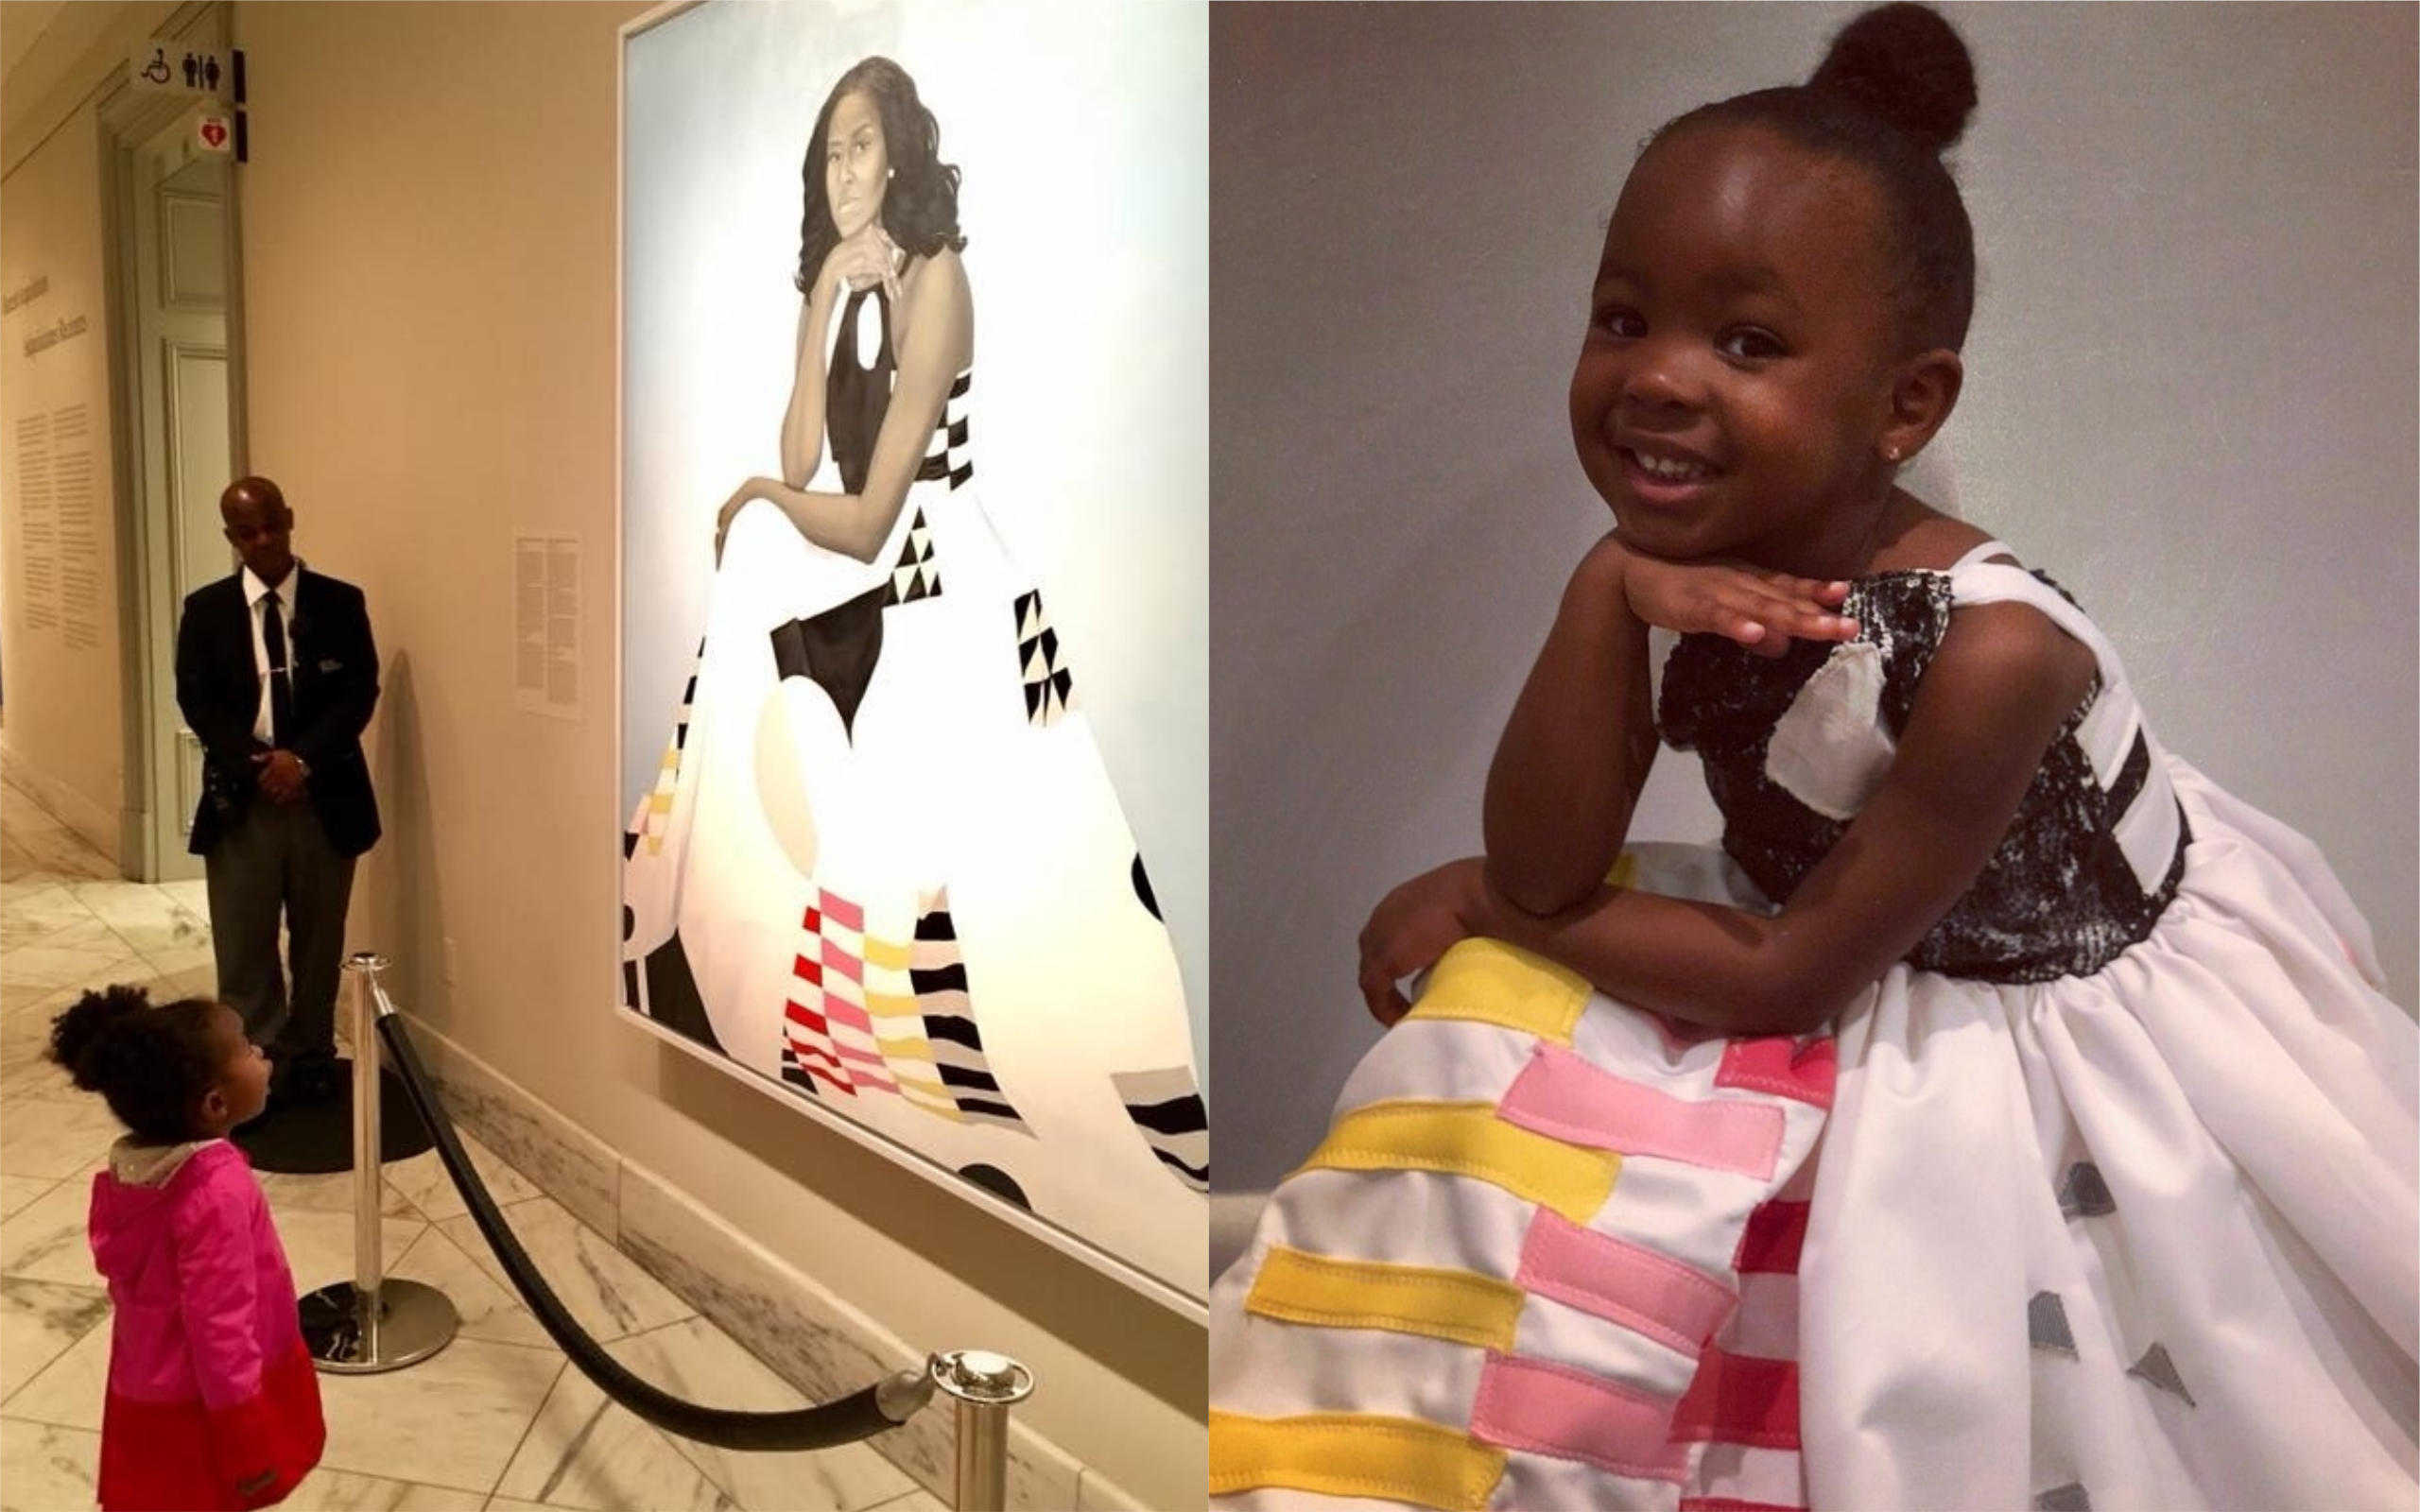 0812bfbdd57 Little girl obsessed with Michelle Obama s portrait dressed as her for  Halloween